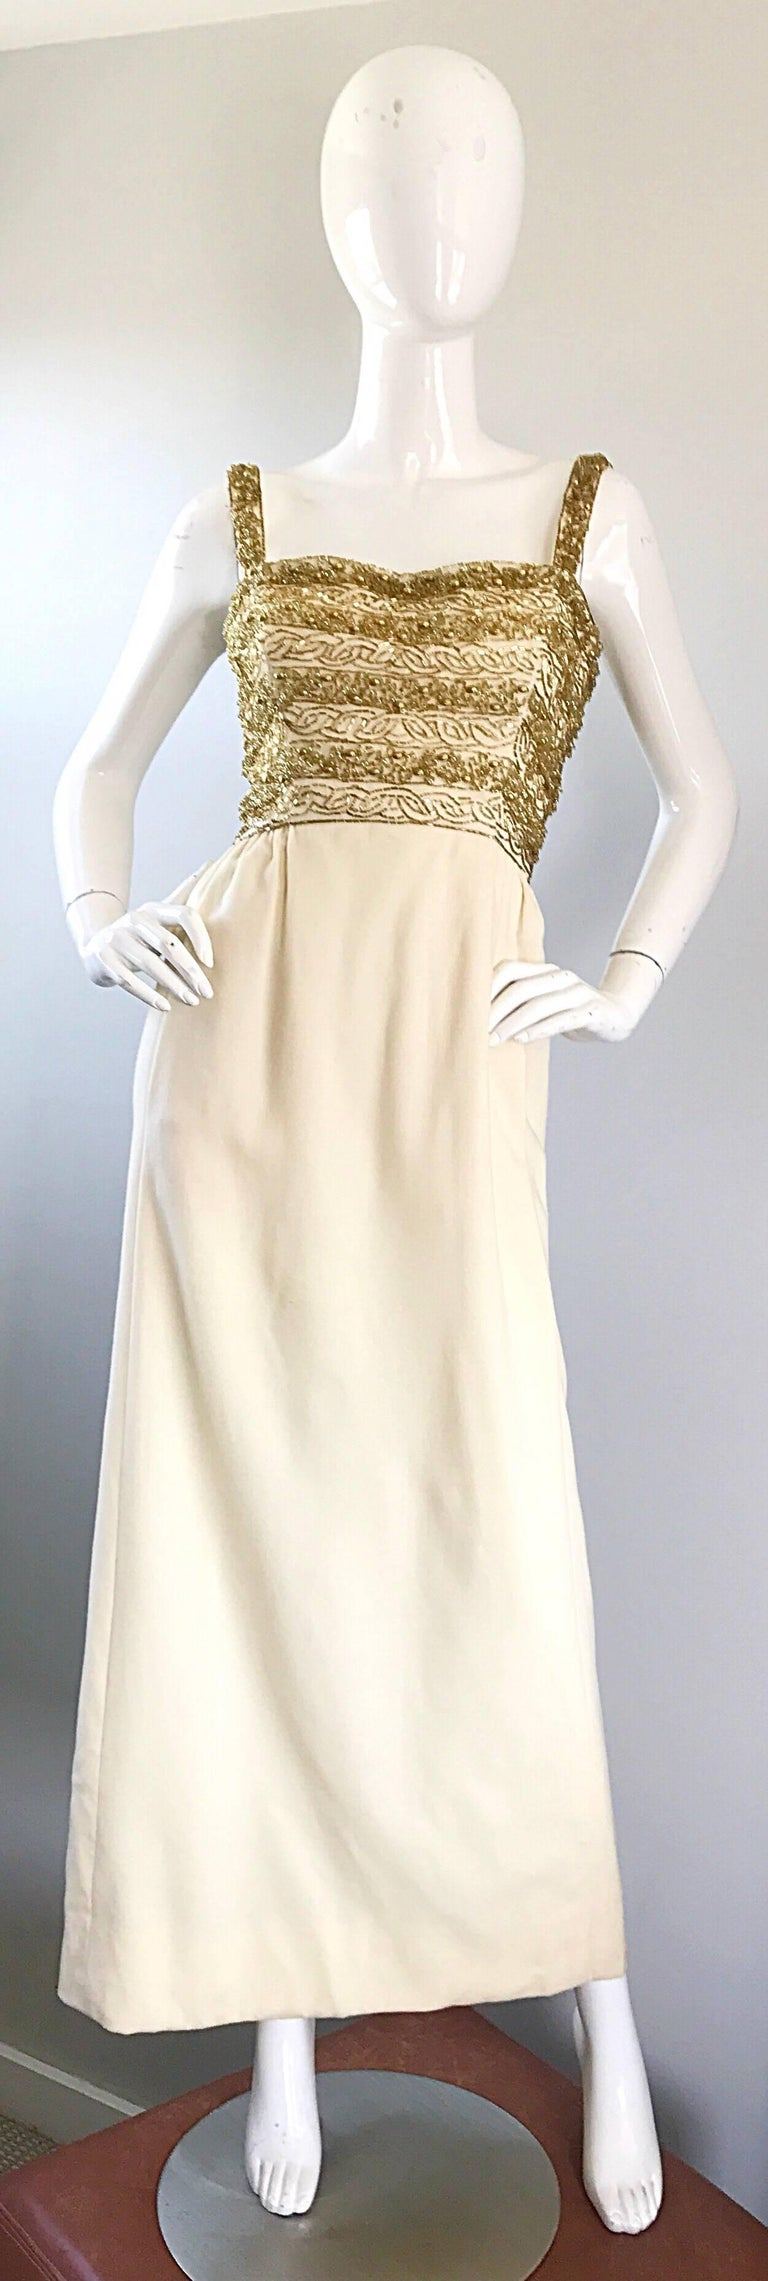 Gorgeous 1960s Joseph Magnin Ivory + Gold Beaded Vintage 60s Wool ...